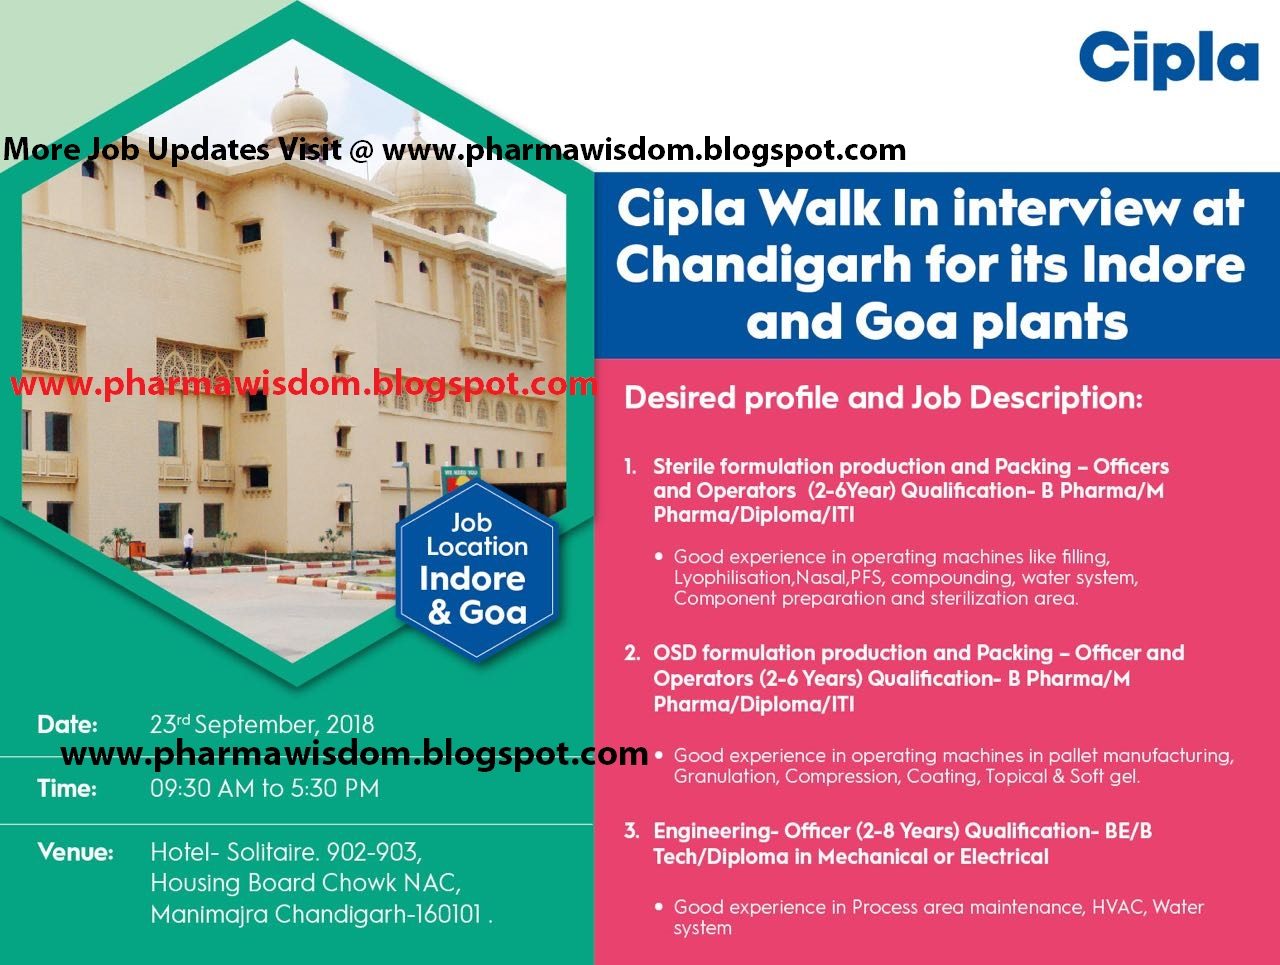 Cipla - Walk-Ins on 23rd Sept' 2018 for Production / Packing